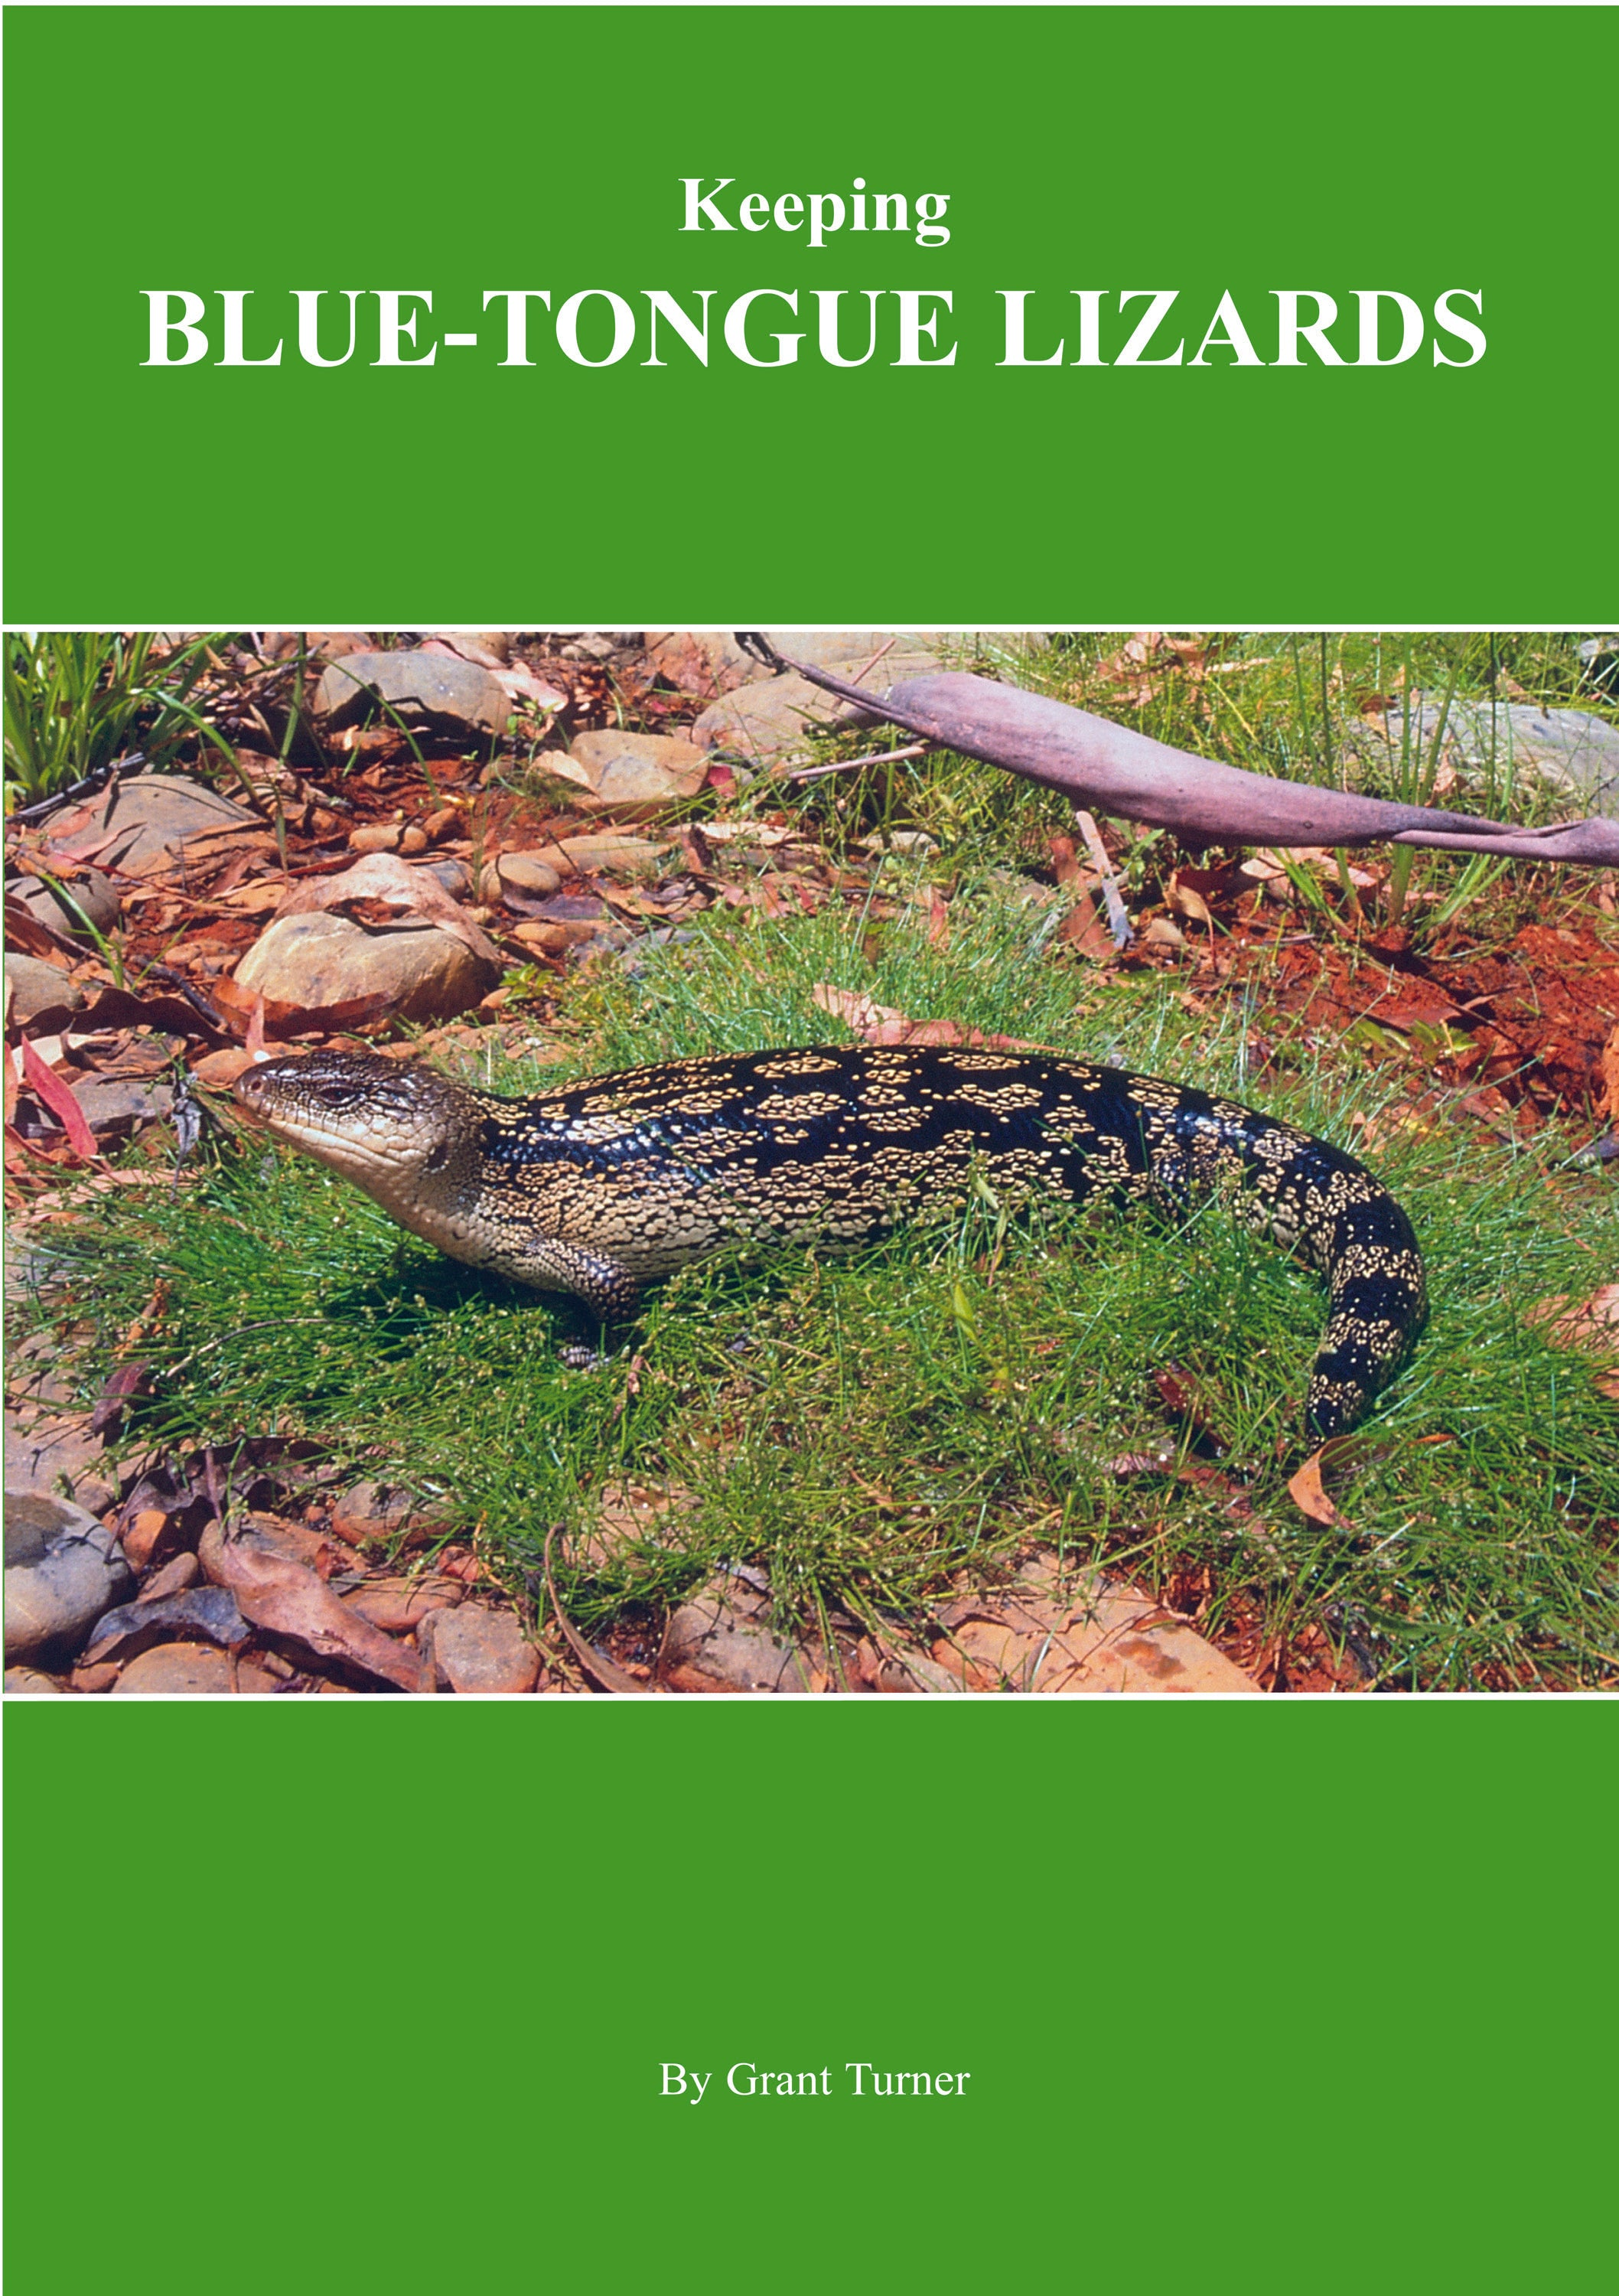 Keeping Blue-tongue Lizards